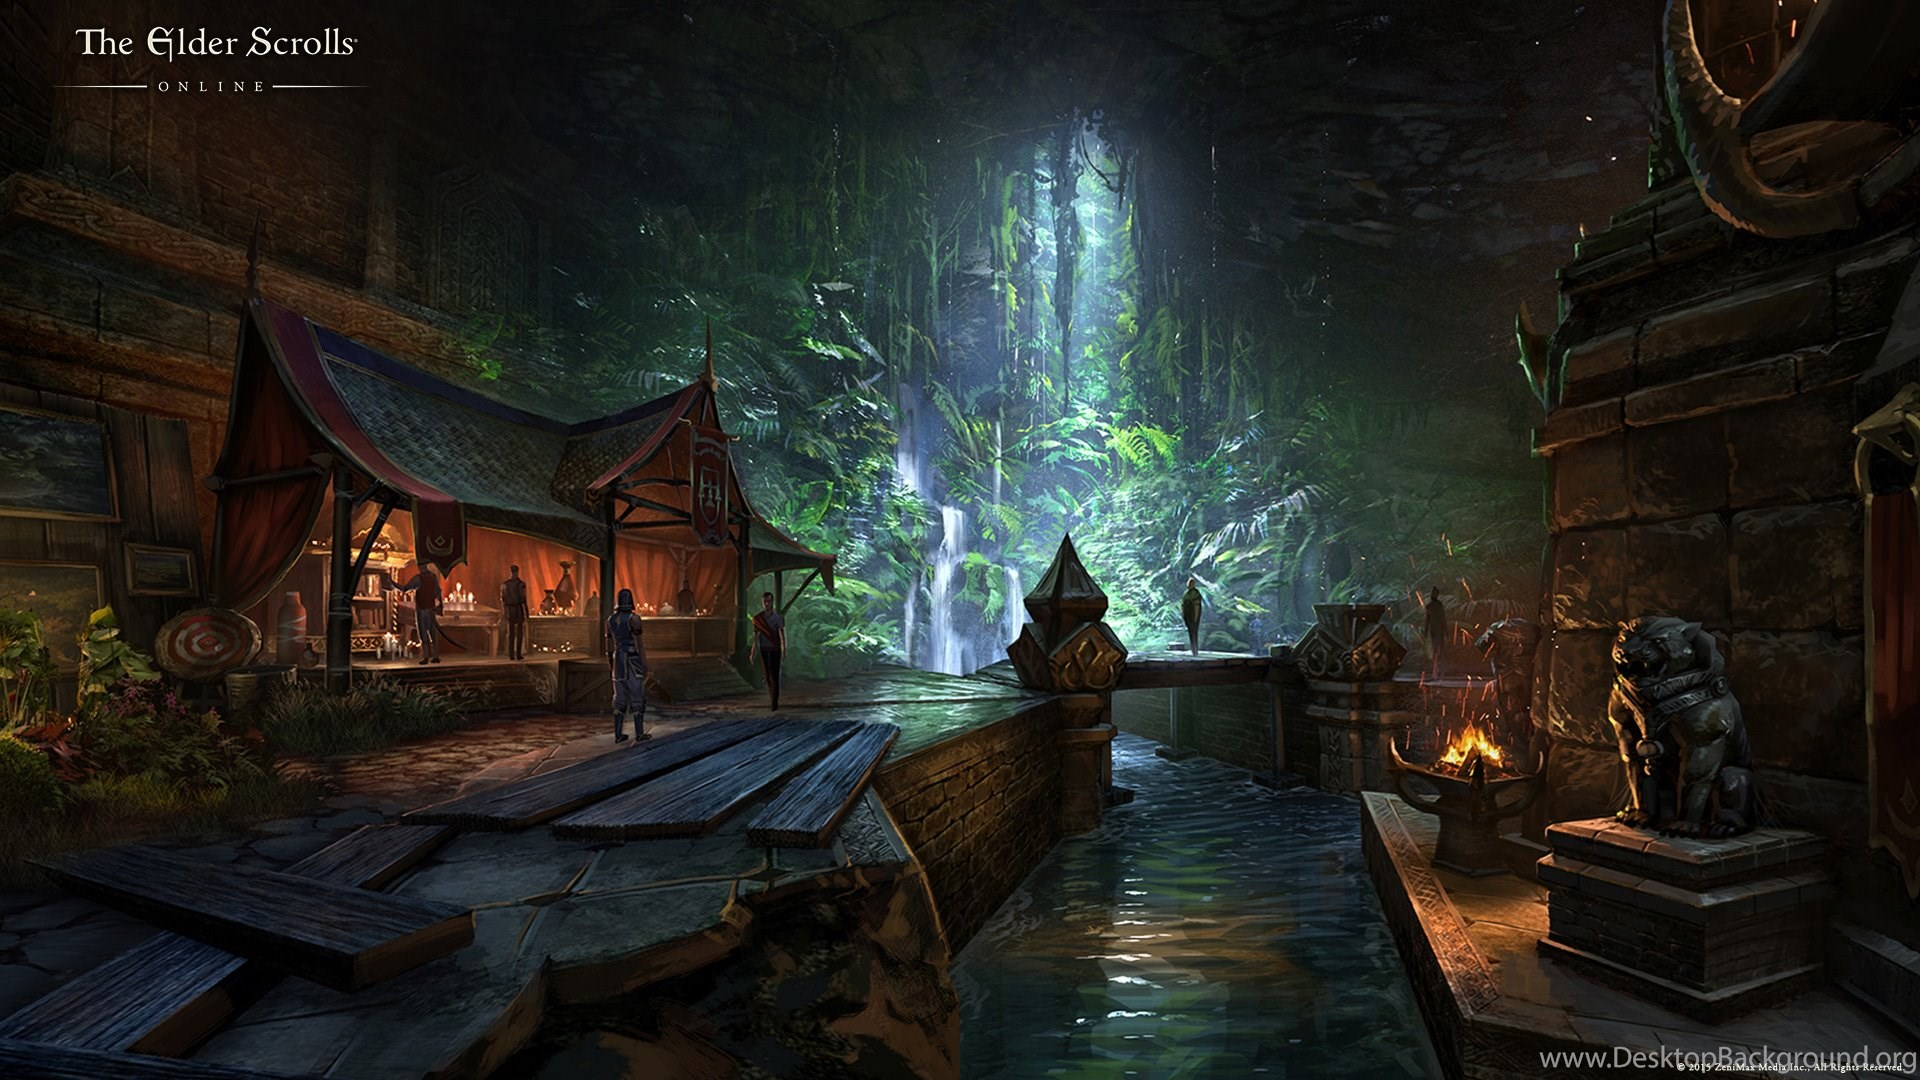 116 The Elder Scrolls Online Hd Wallpapers Desktop Background